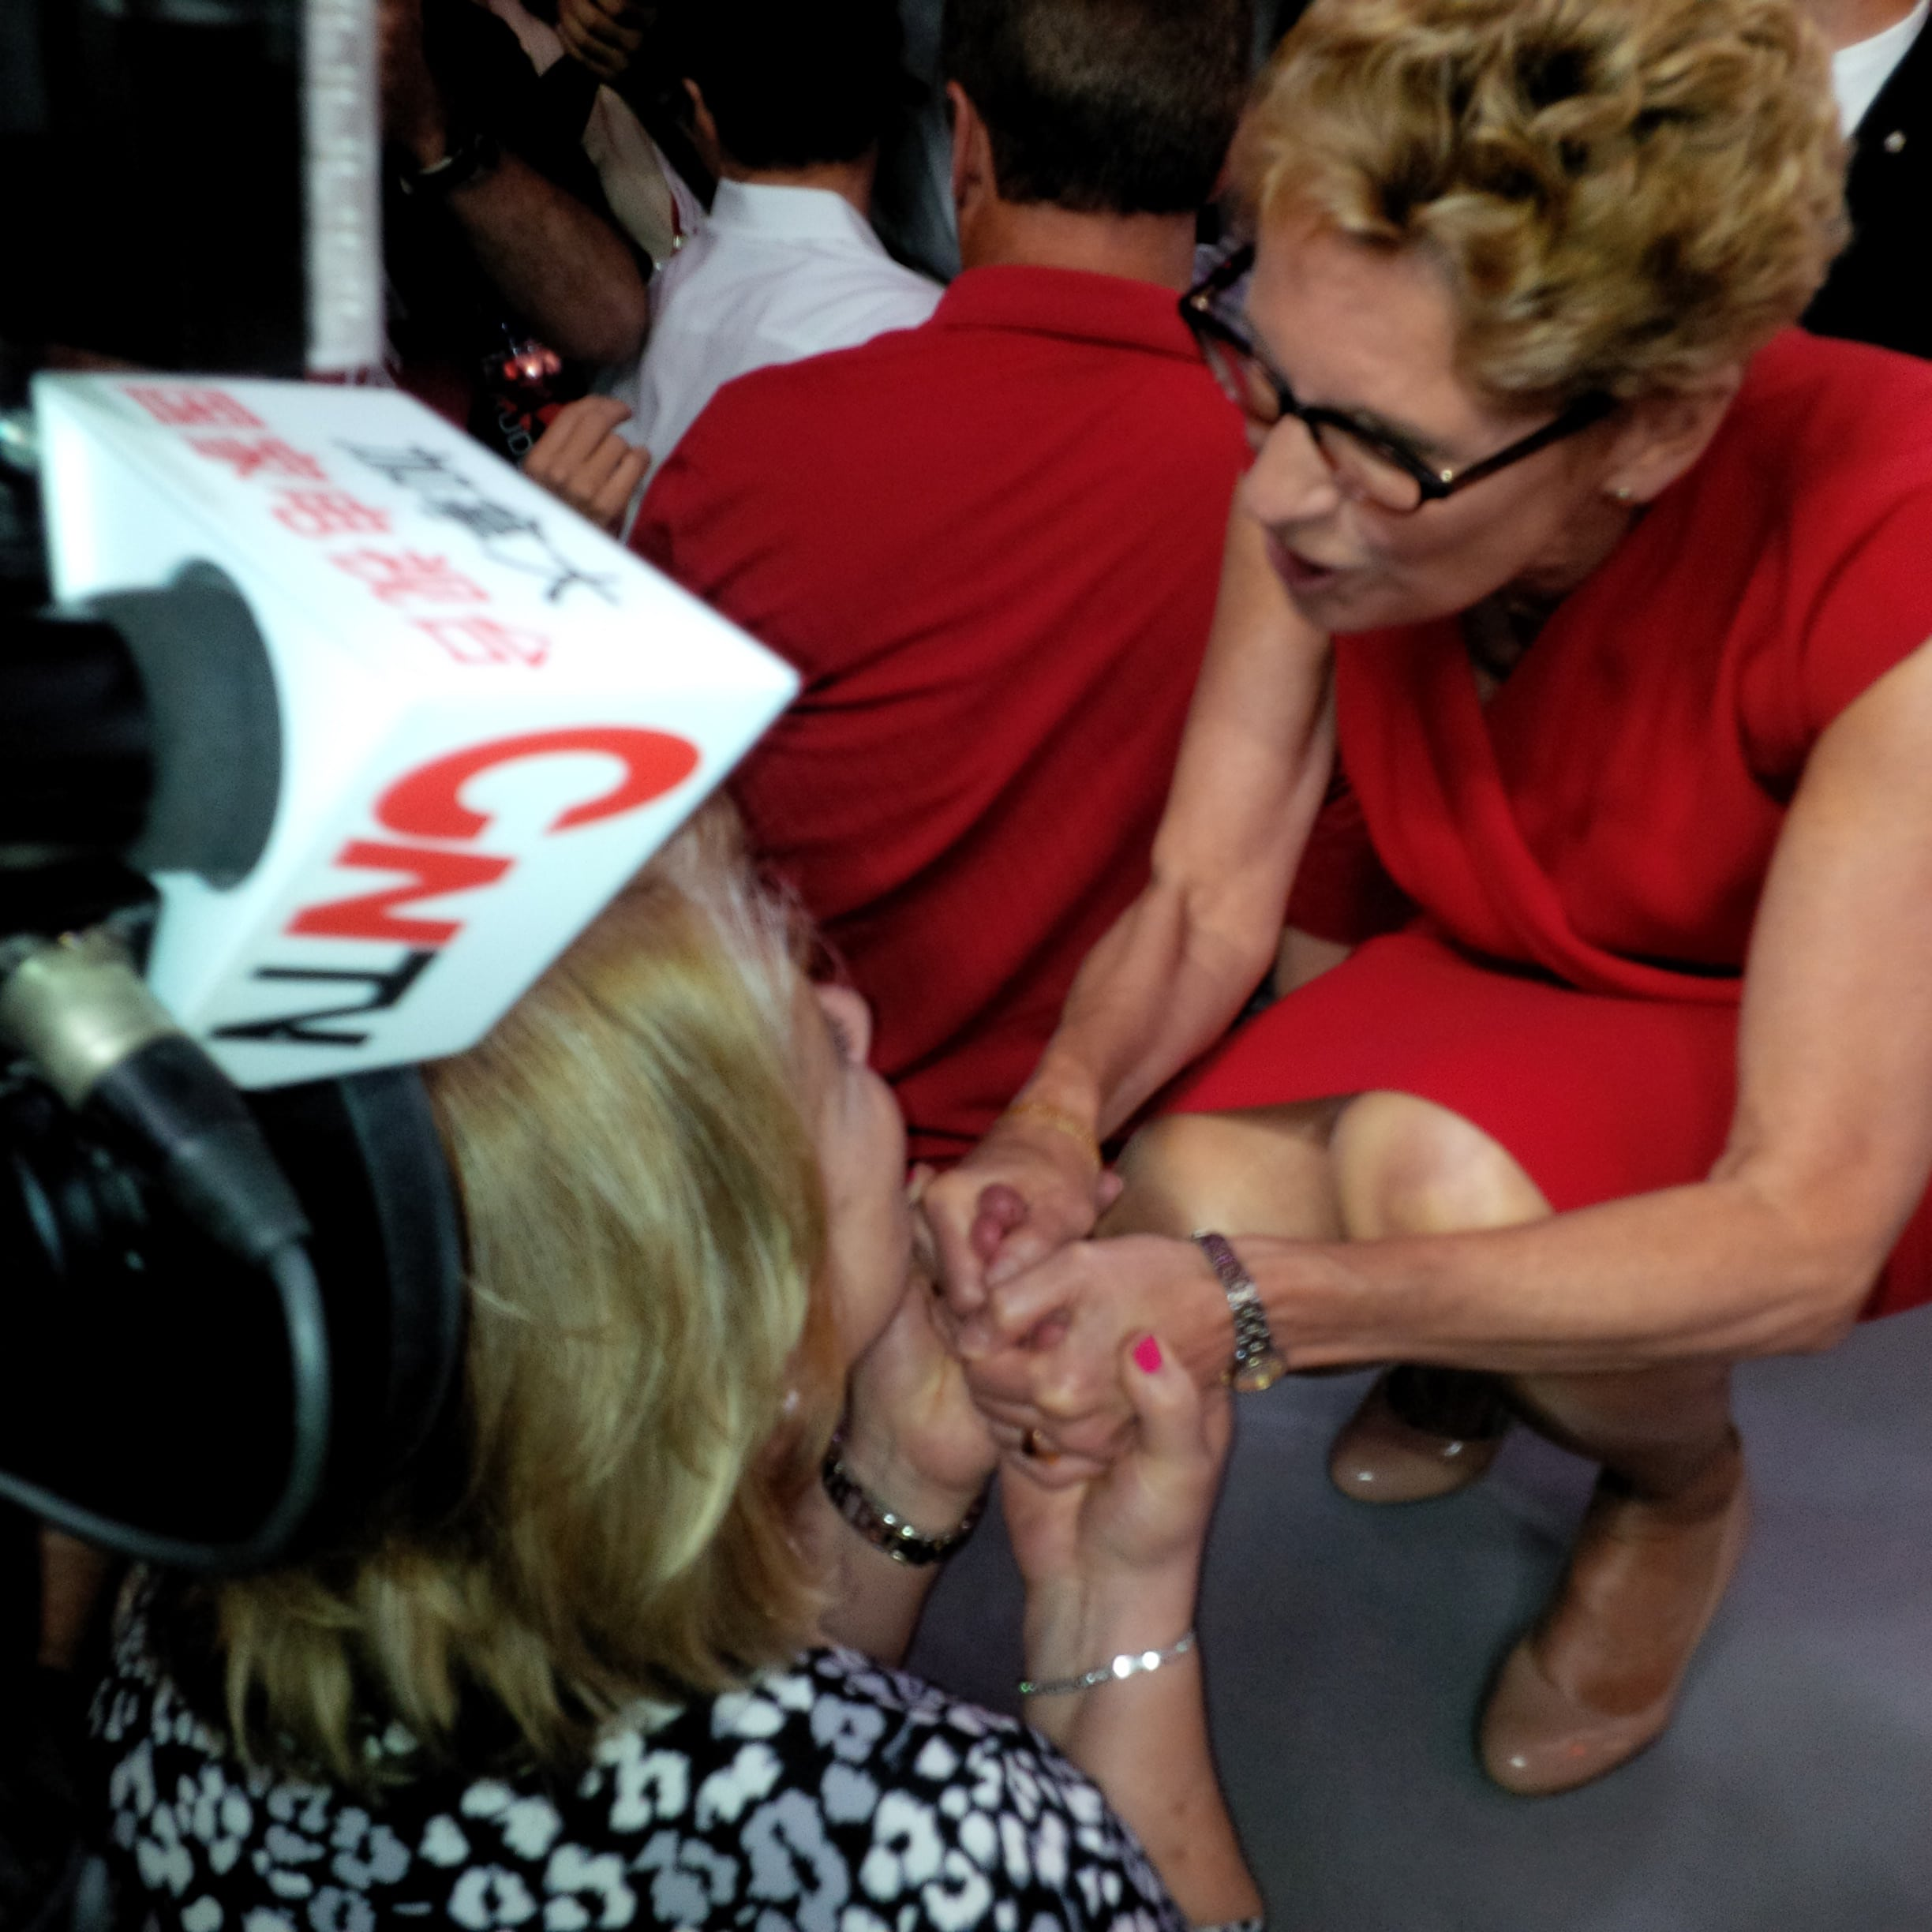 Kathleen Wynne talking to someone while a news station records the interaction